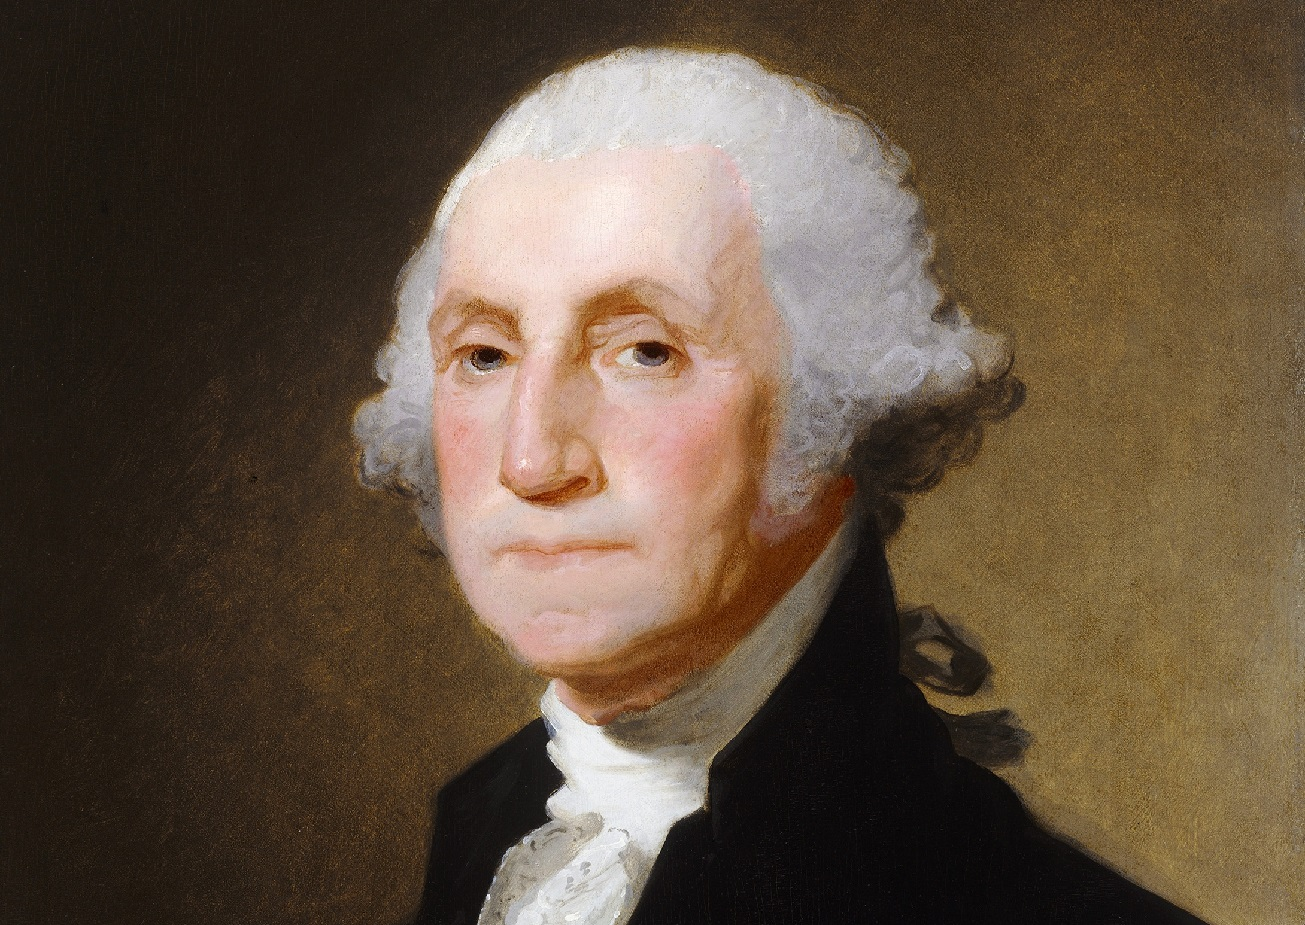 Presidents Day Drama George Washington Could Have Been Replaced The National Interest